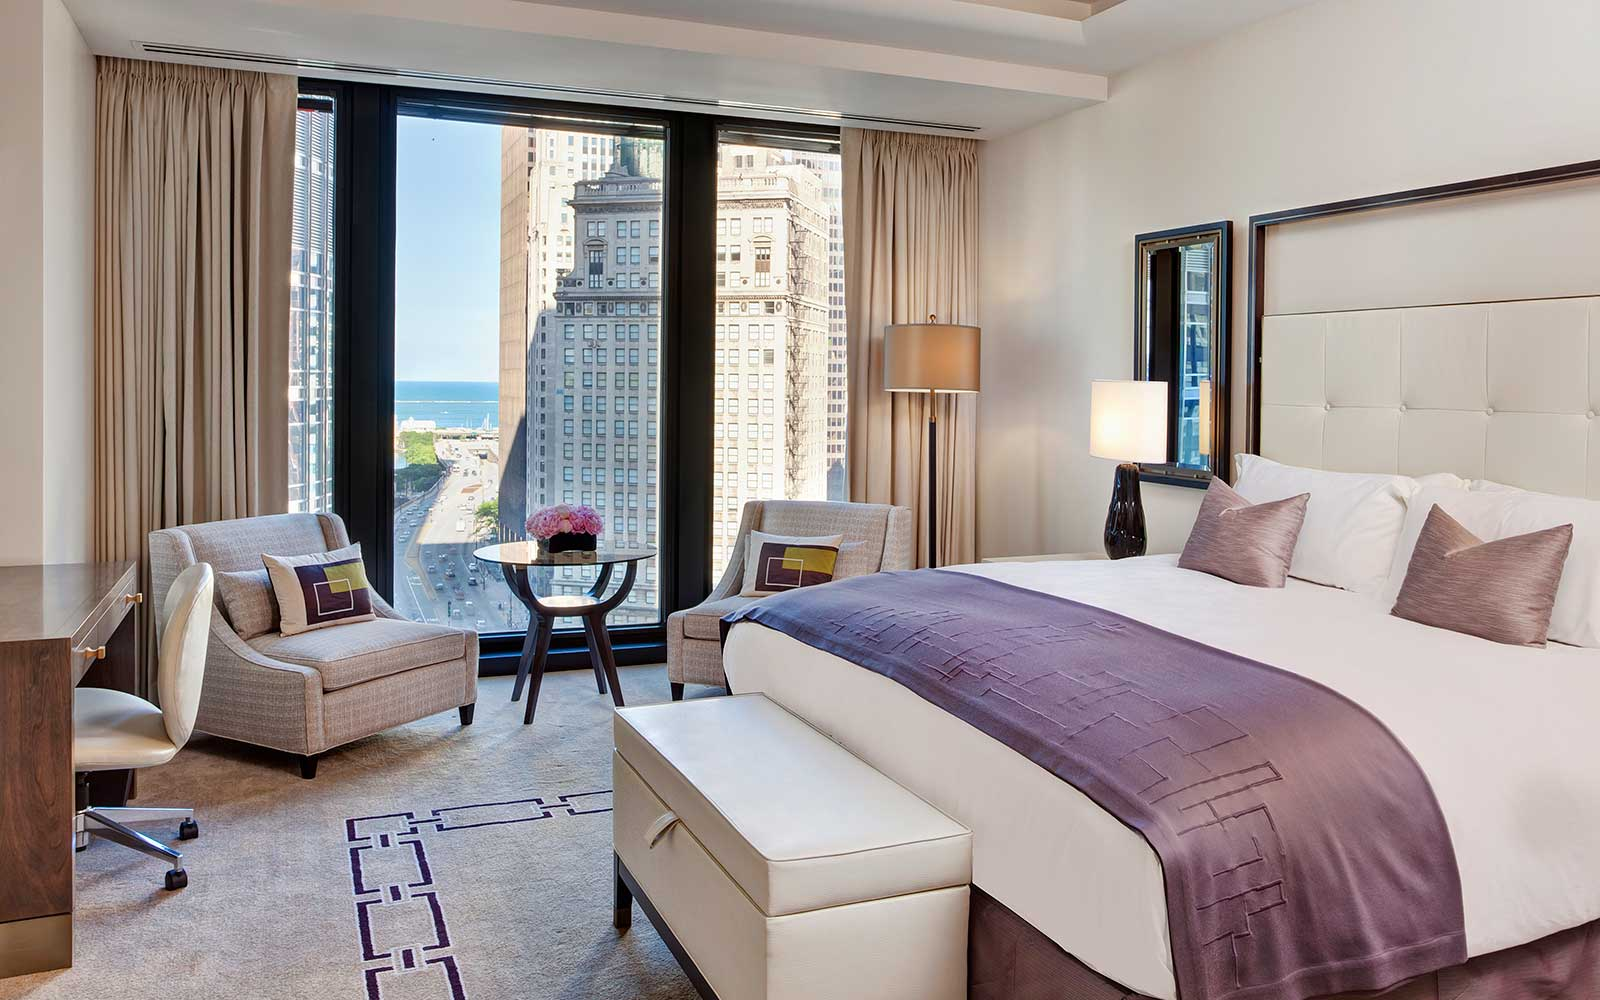 Where to Stay for the Chicago Architecture Biennial